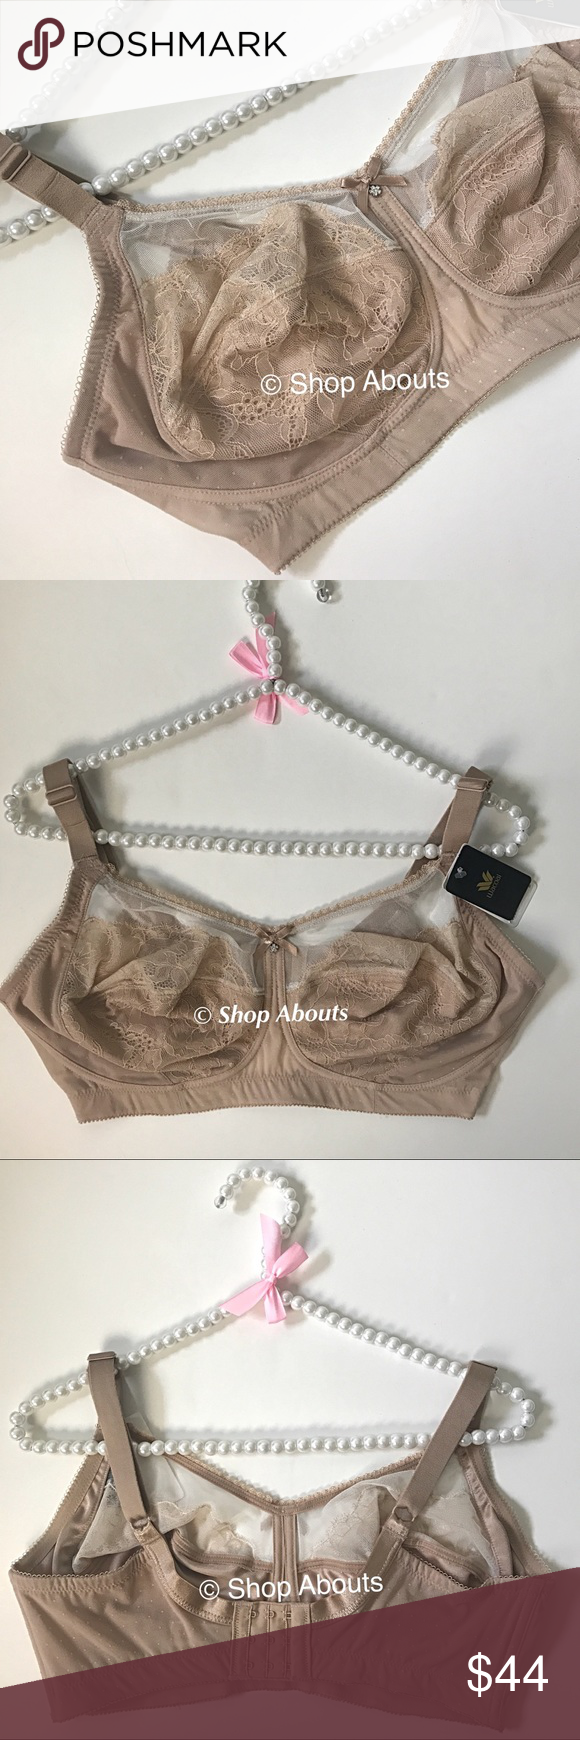 67af3332e1 Wacoal Retro Chic Nude Lace Soft Wirefree Bra Wacoal Retro Chic Soft Cups  Wirefee Bra Style